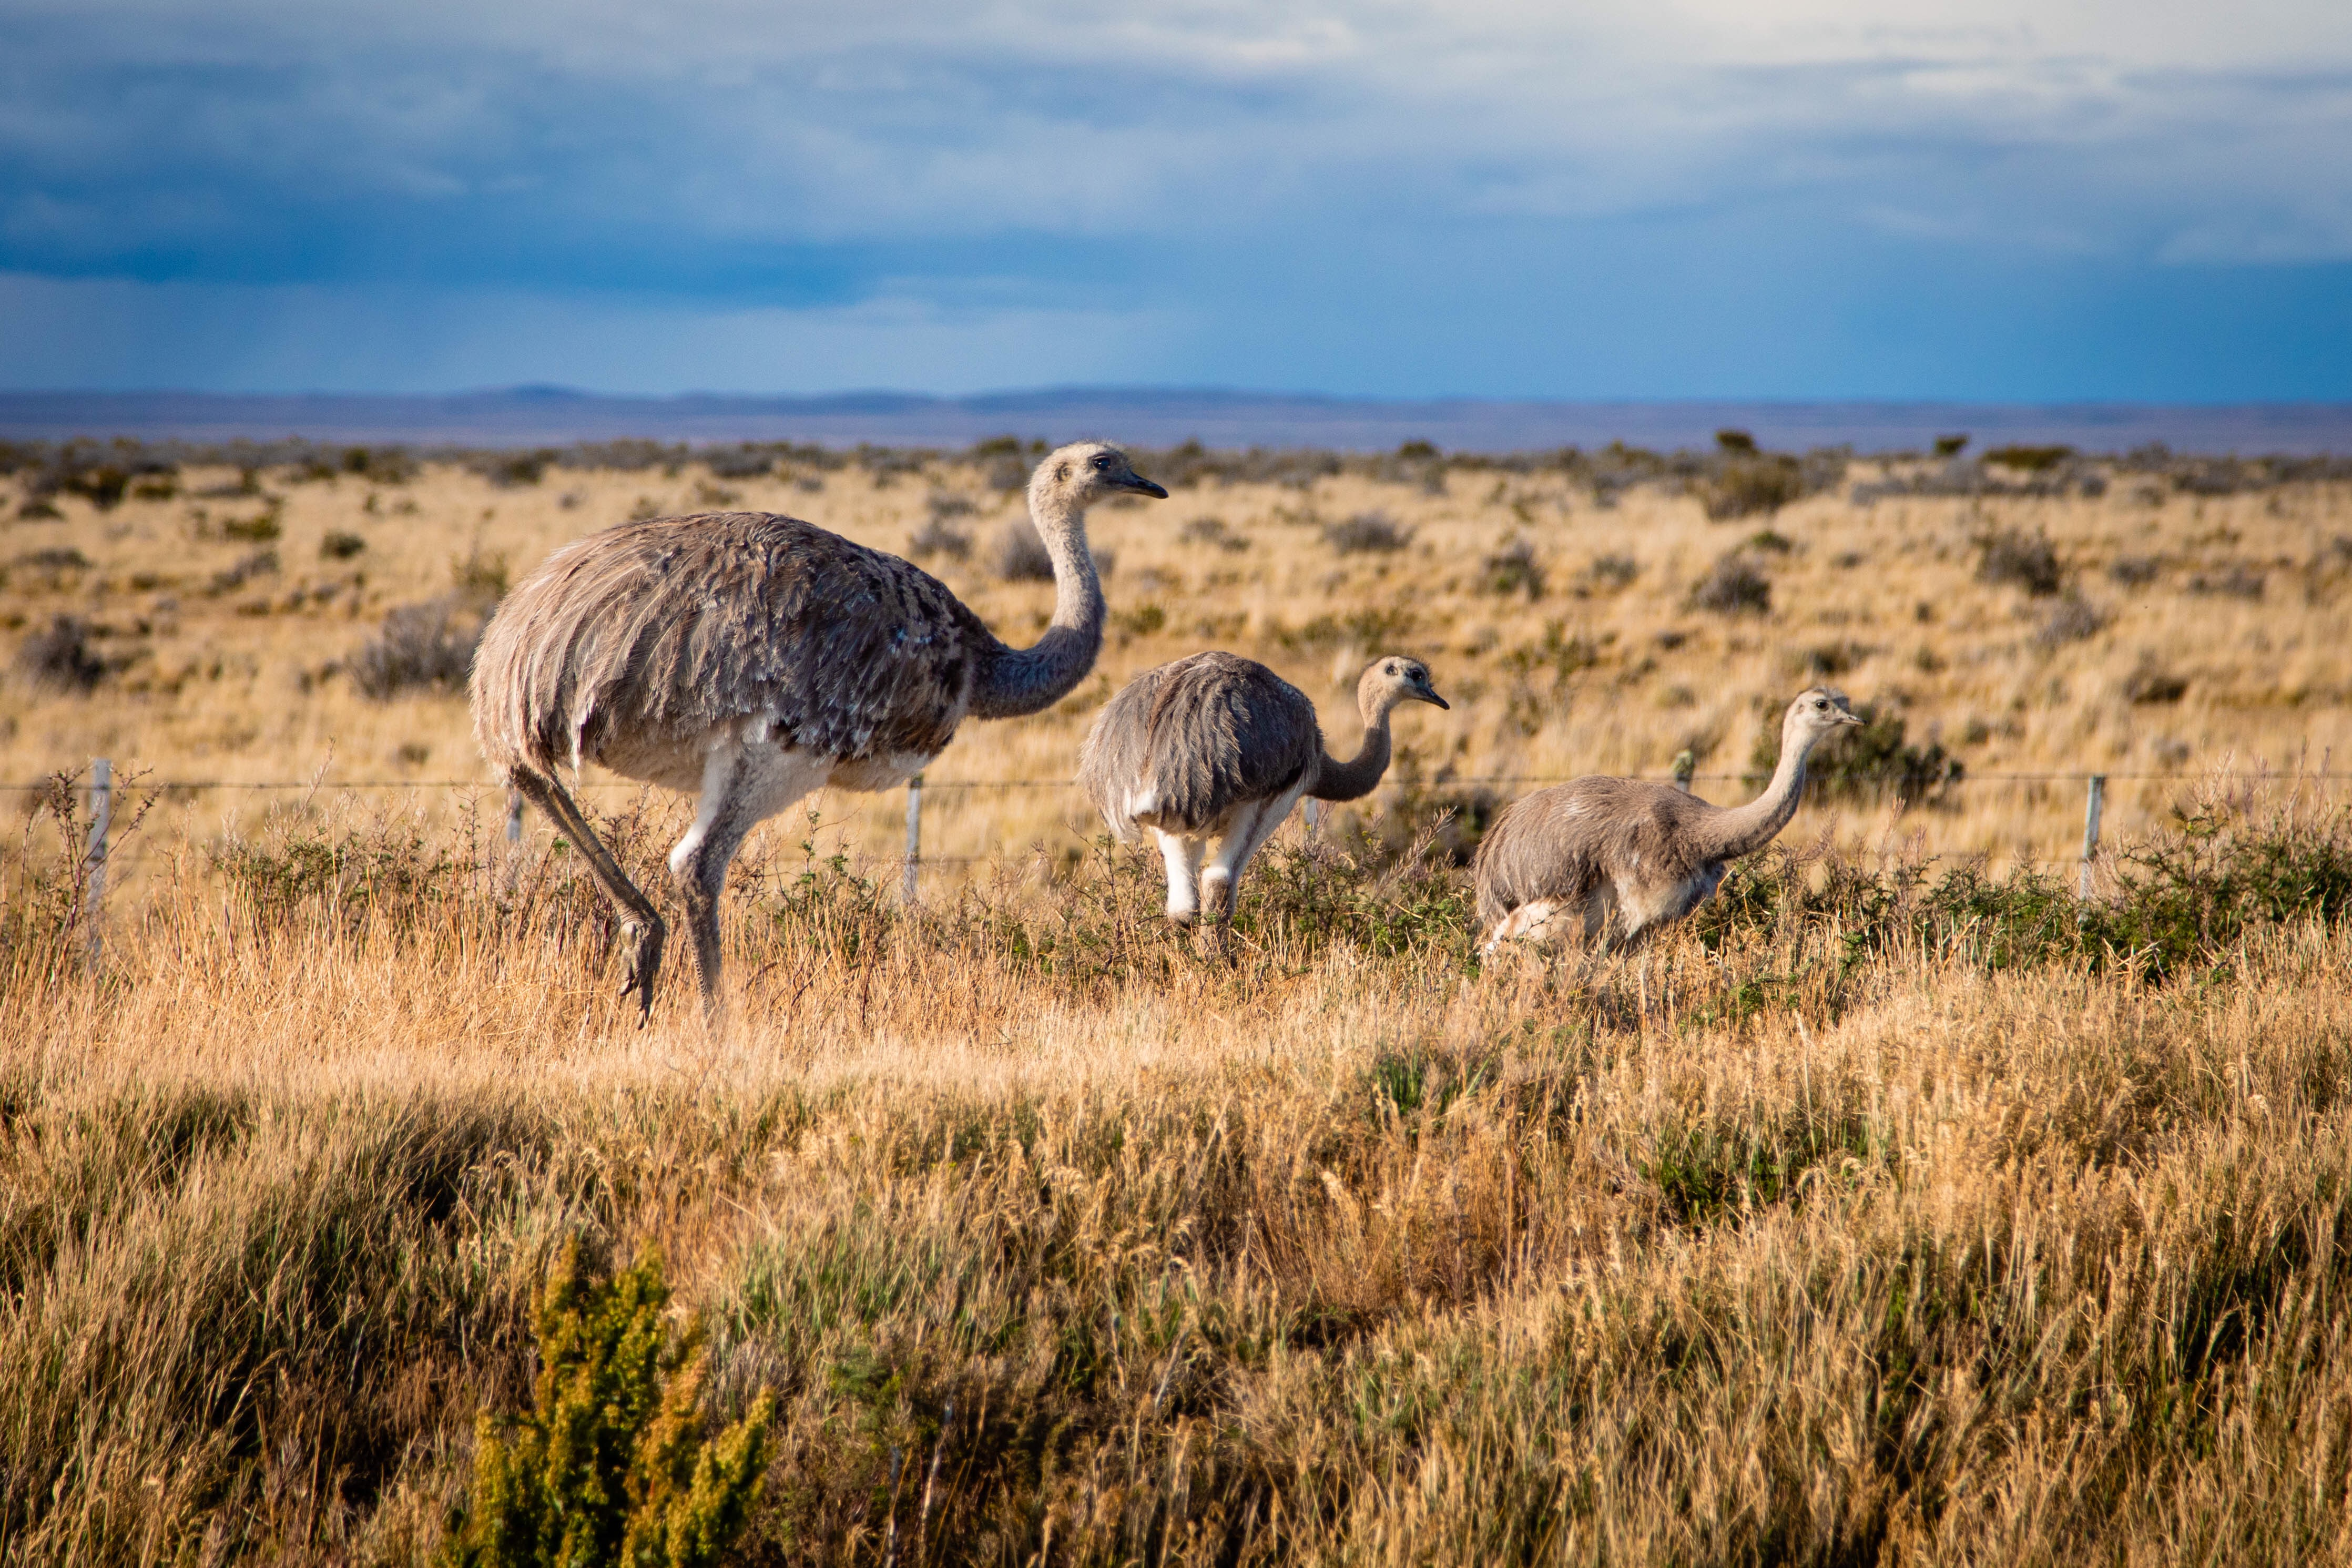 A mother Rhea and her babies on the side of the road in Punta Arenas